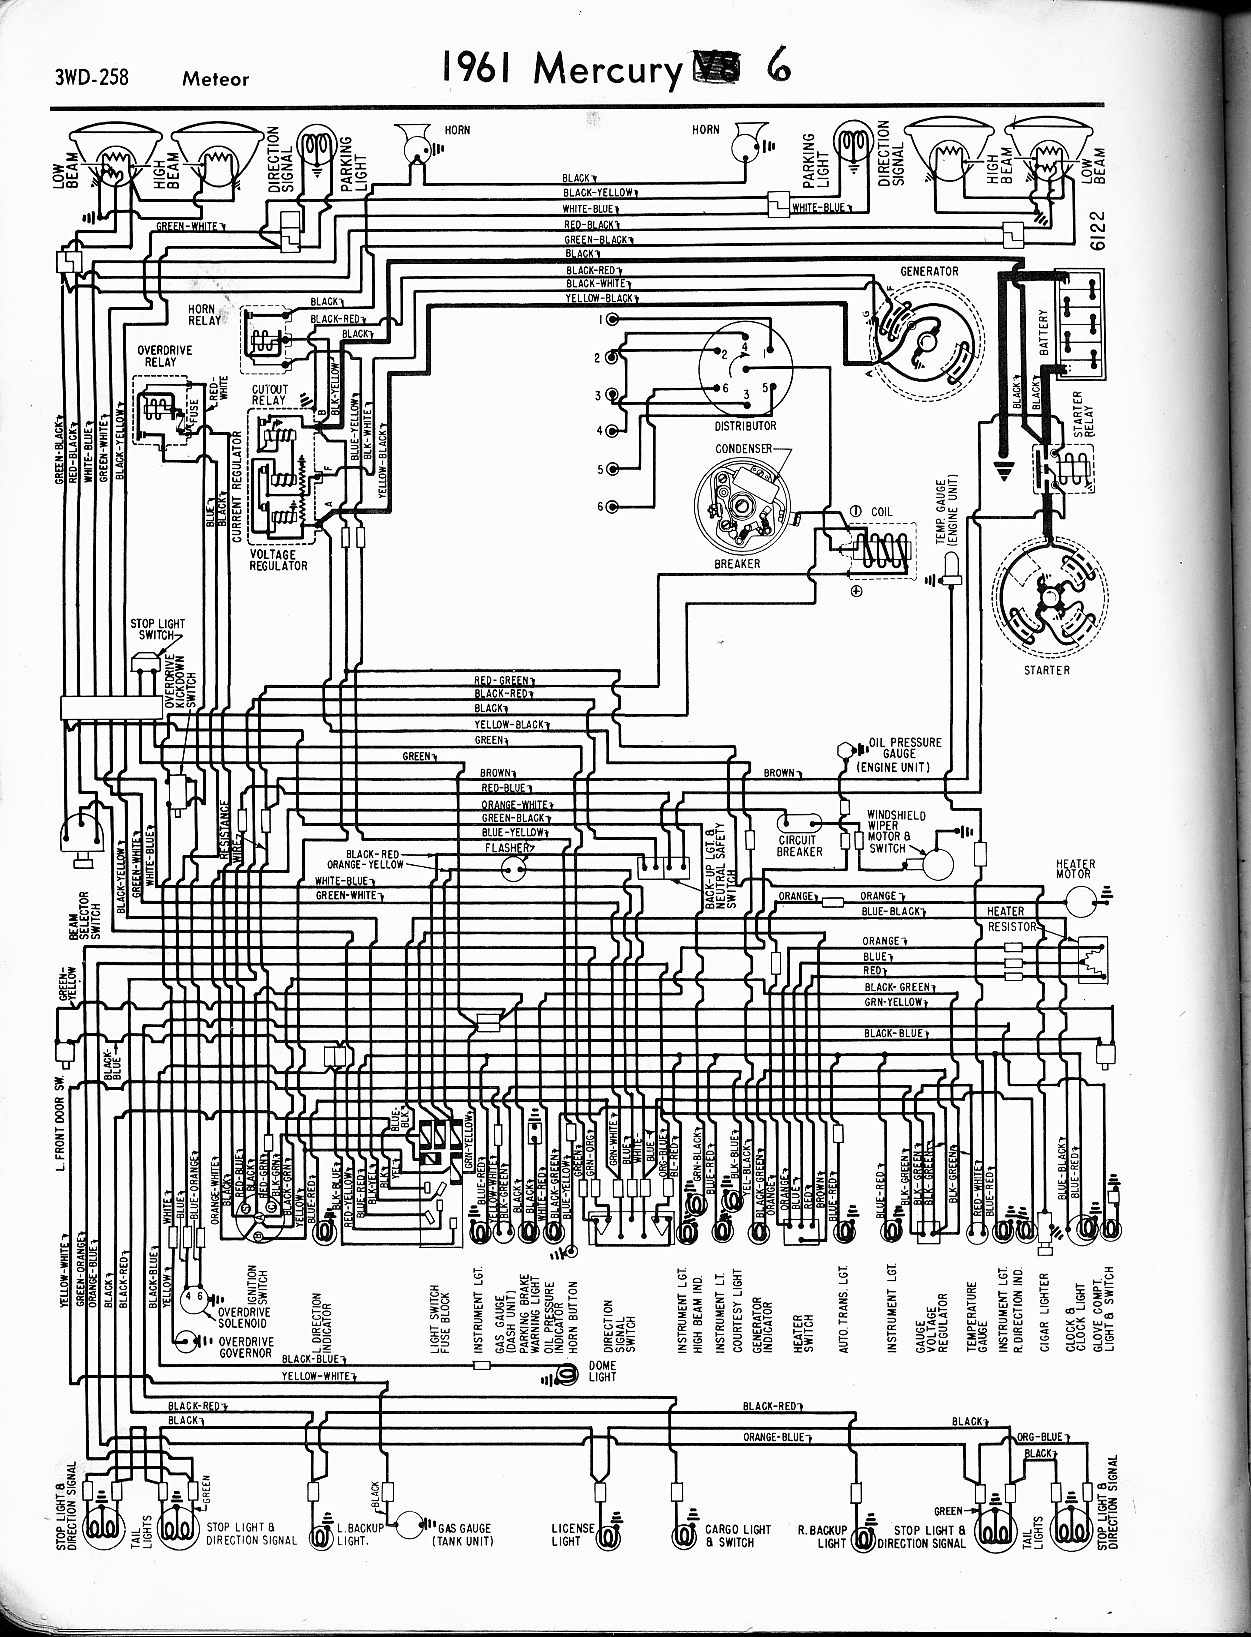 1953 telecaster wiring diagram mercury comet wiring diagrams | better wiring diagram online 1953 mercury wiring diagram